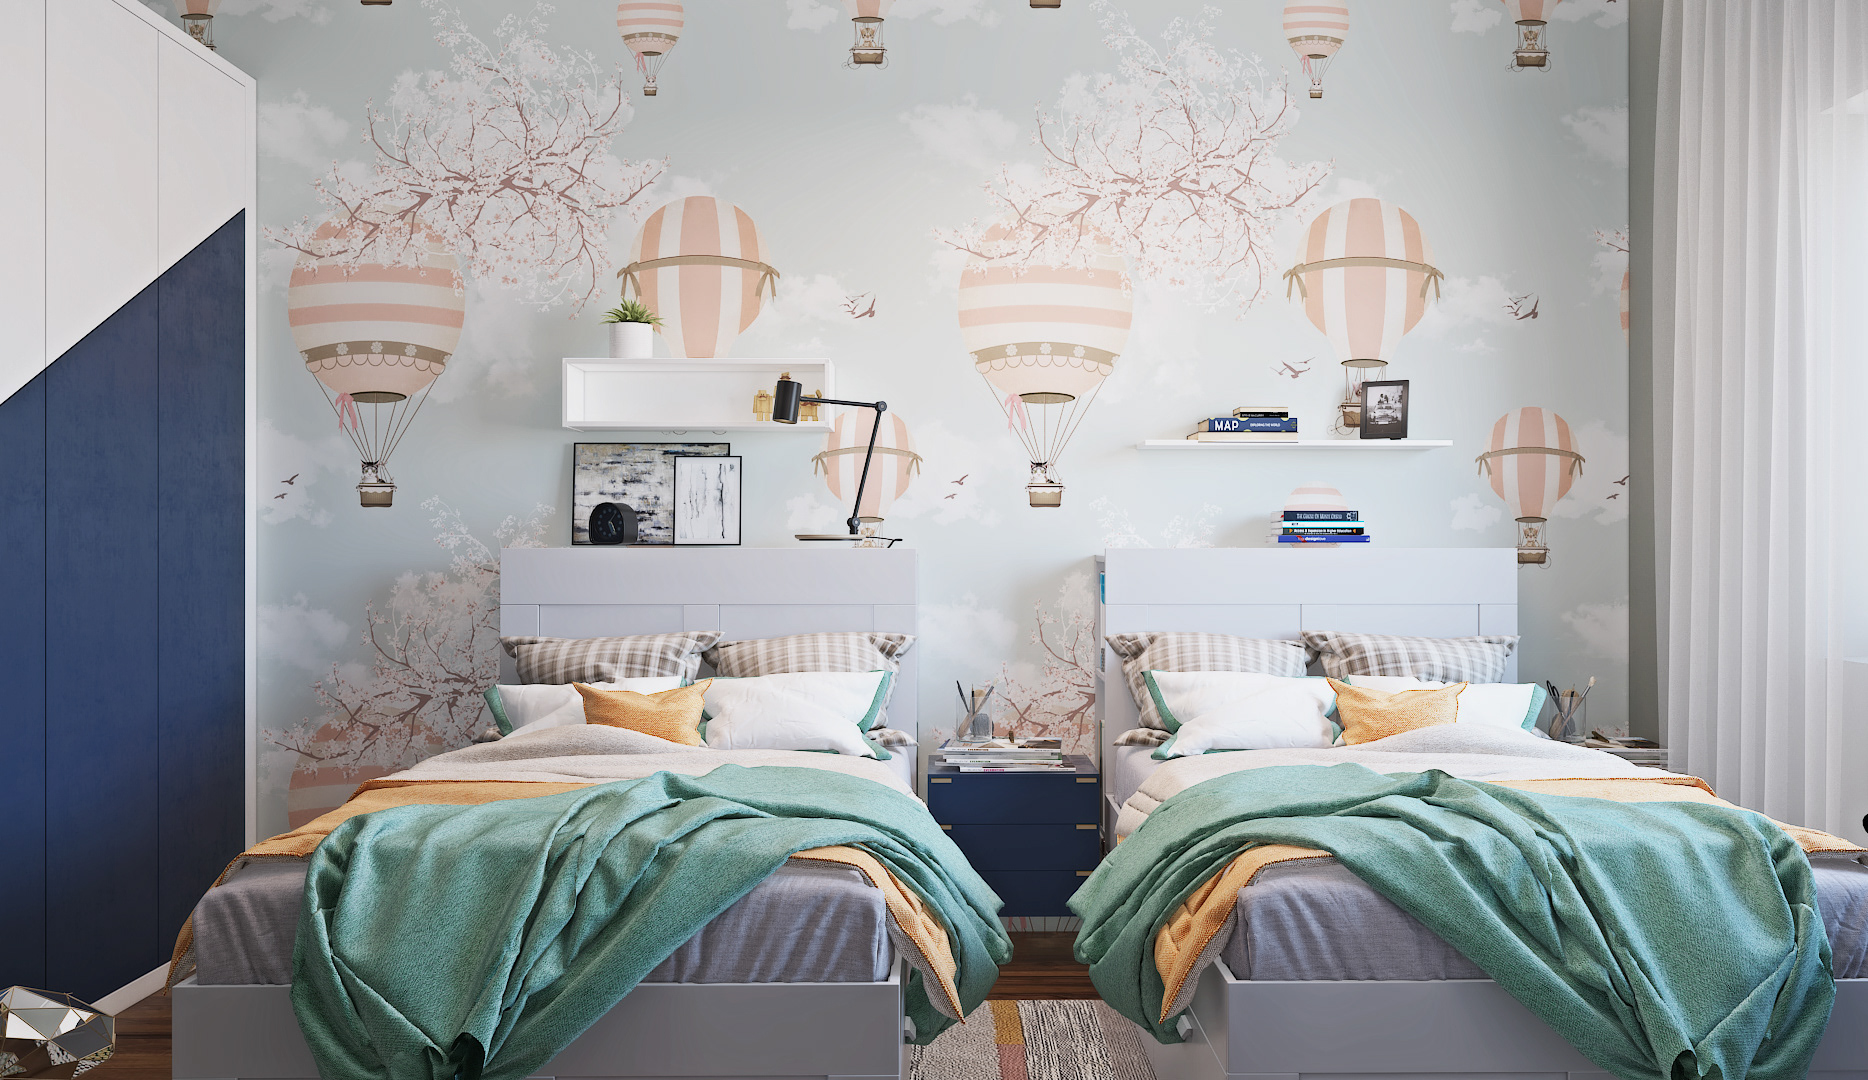 Hot Air Balloon Wallpaper with soft cushion and cool twin beds for kids